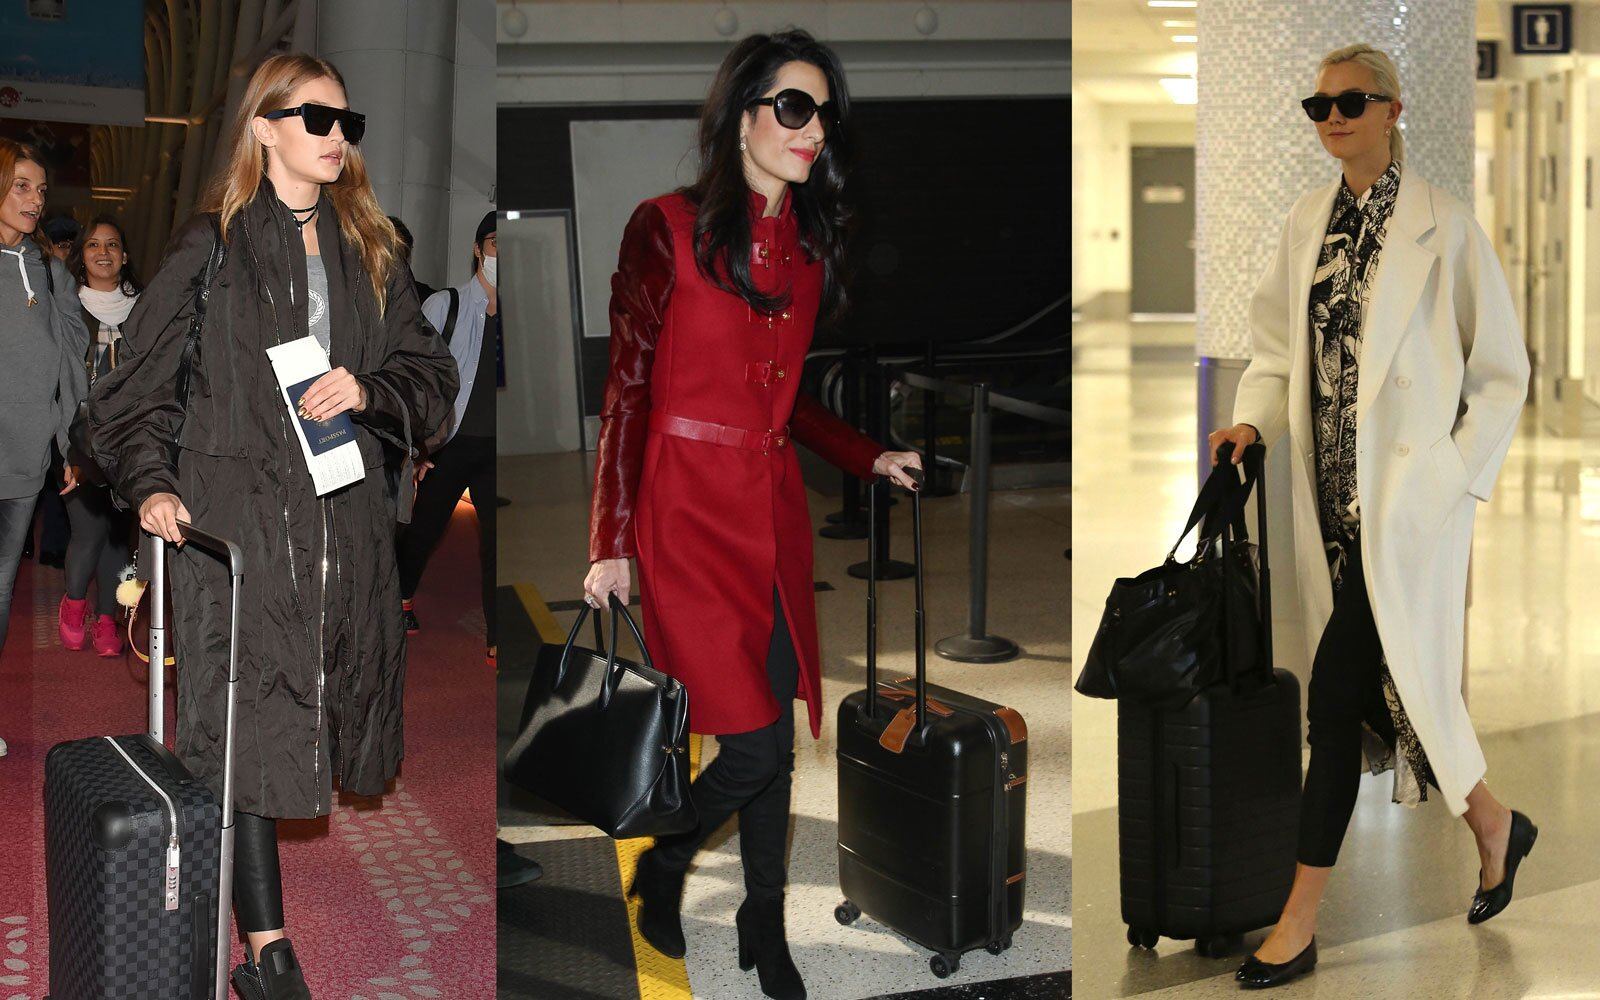 bd57f56c24e8b Celebrities' Favorite Luggage Brands | Travel + Leisure